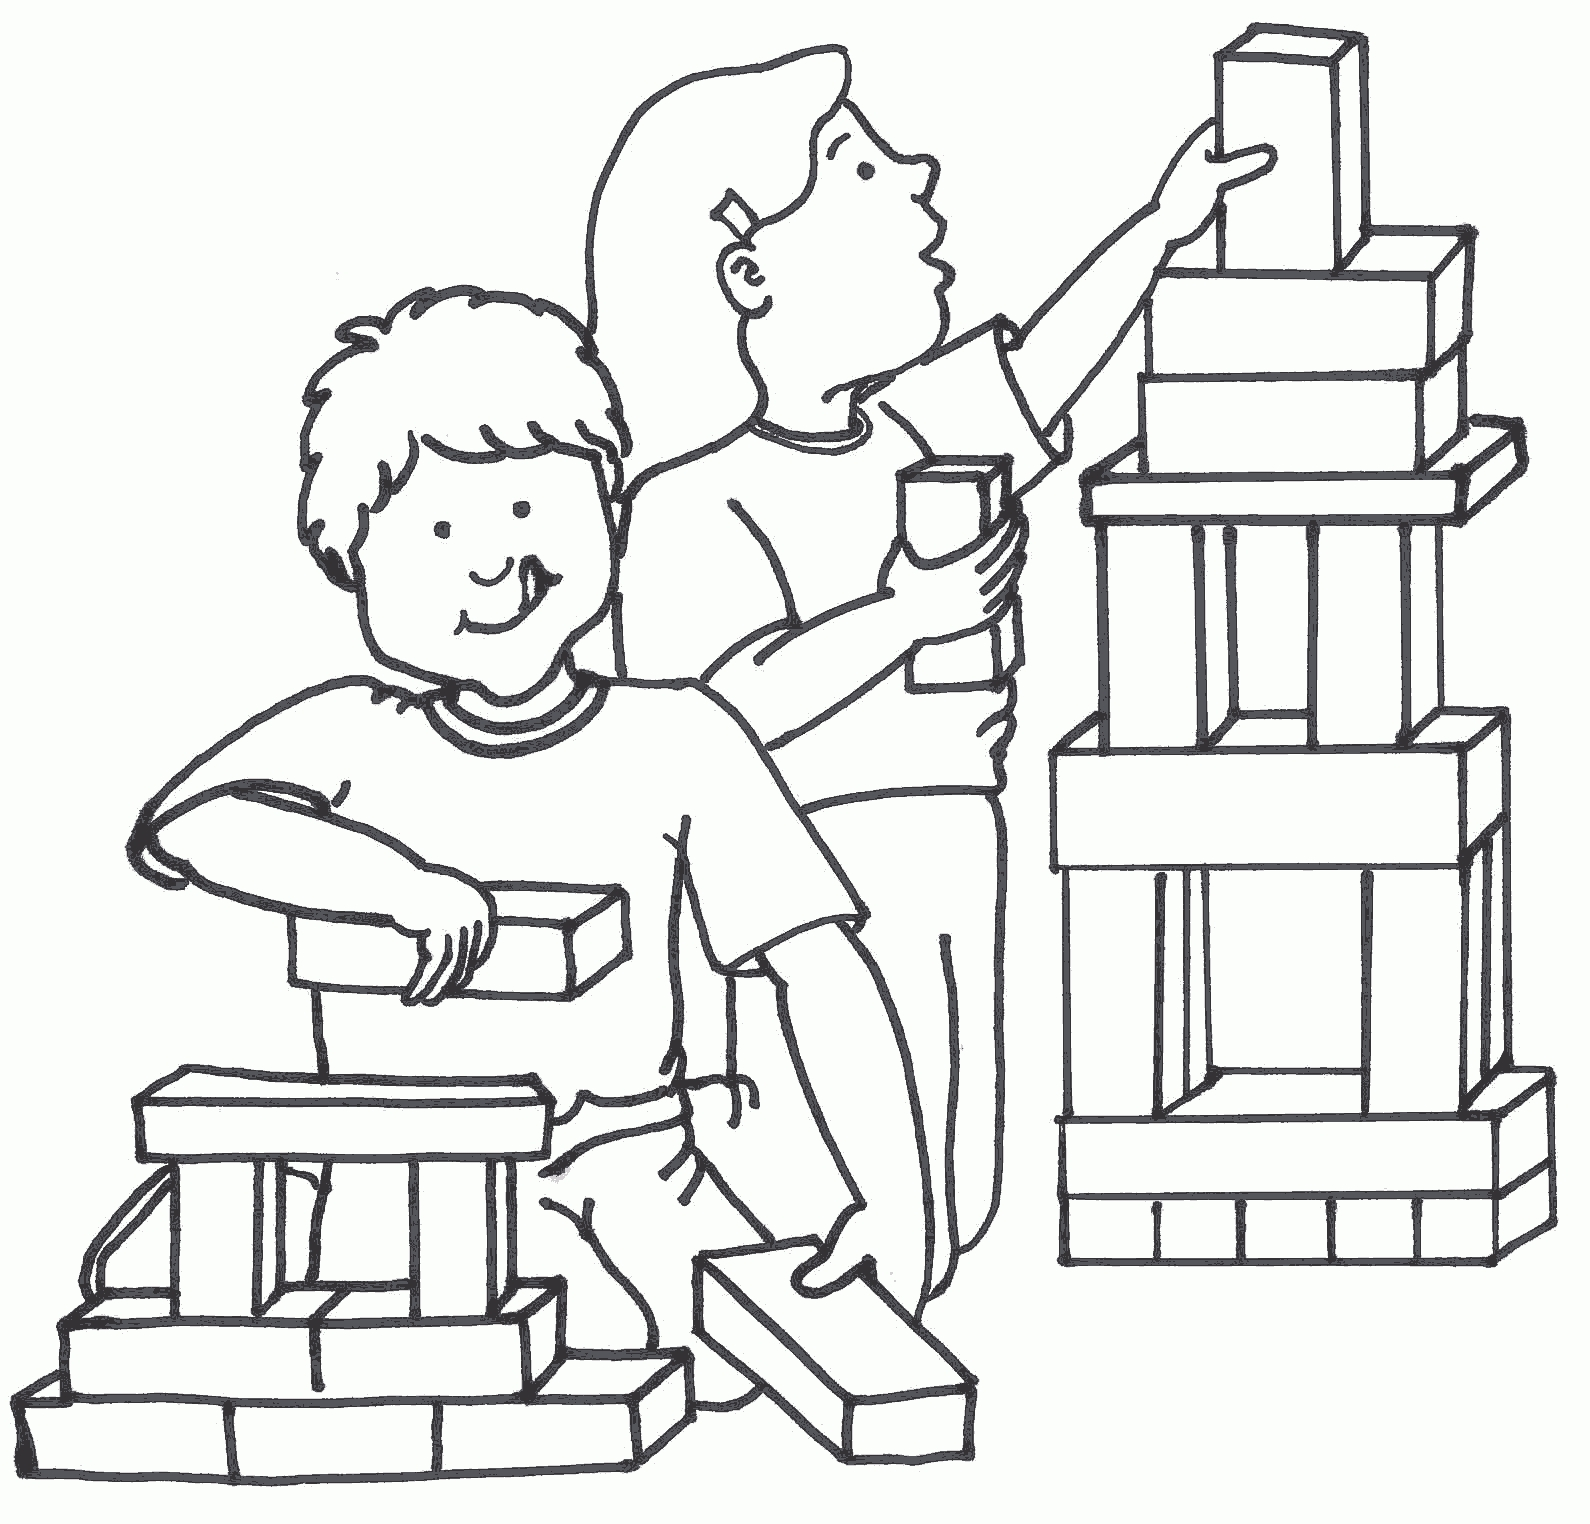 Blocks clipart black and white. Awesome of kids playing